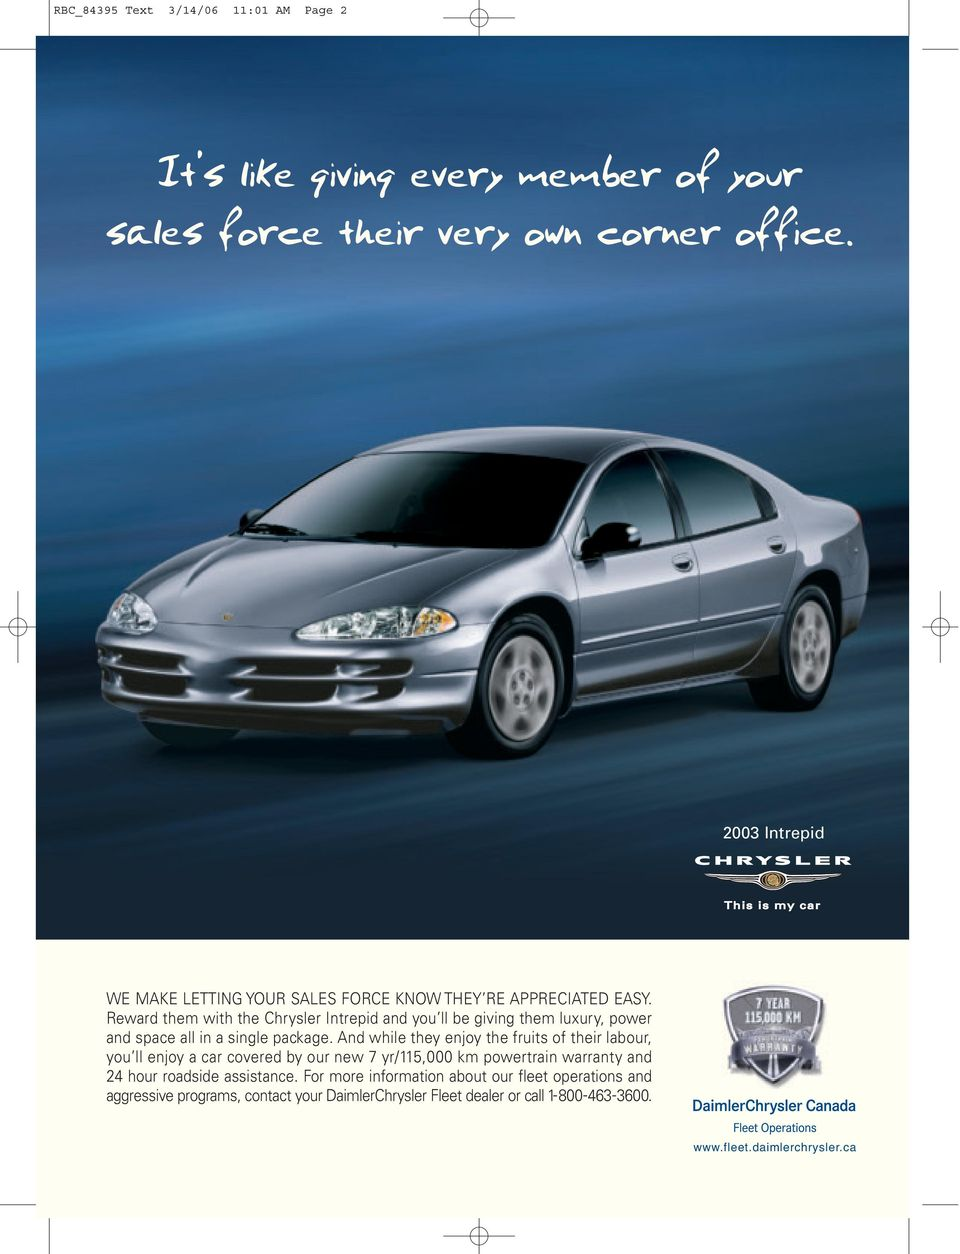 Reward them with the Chrysler Intrepid and you ll be giving them luxury, power and space all in a single package.